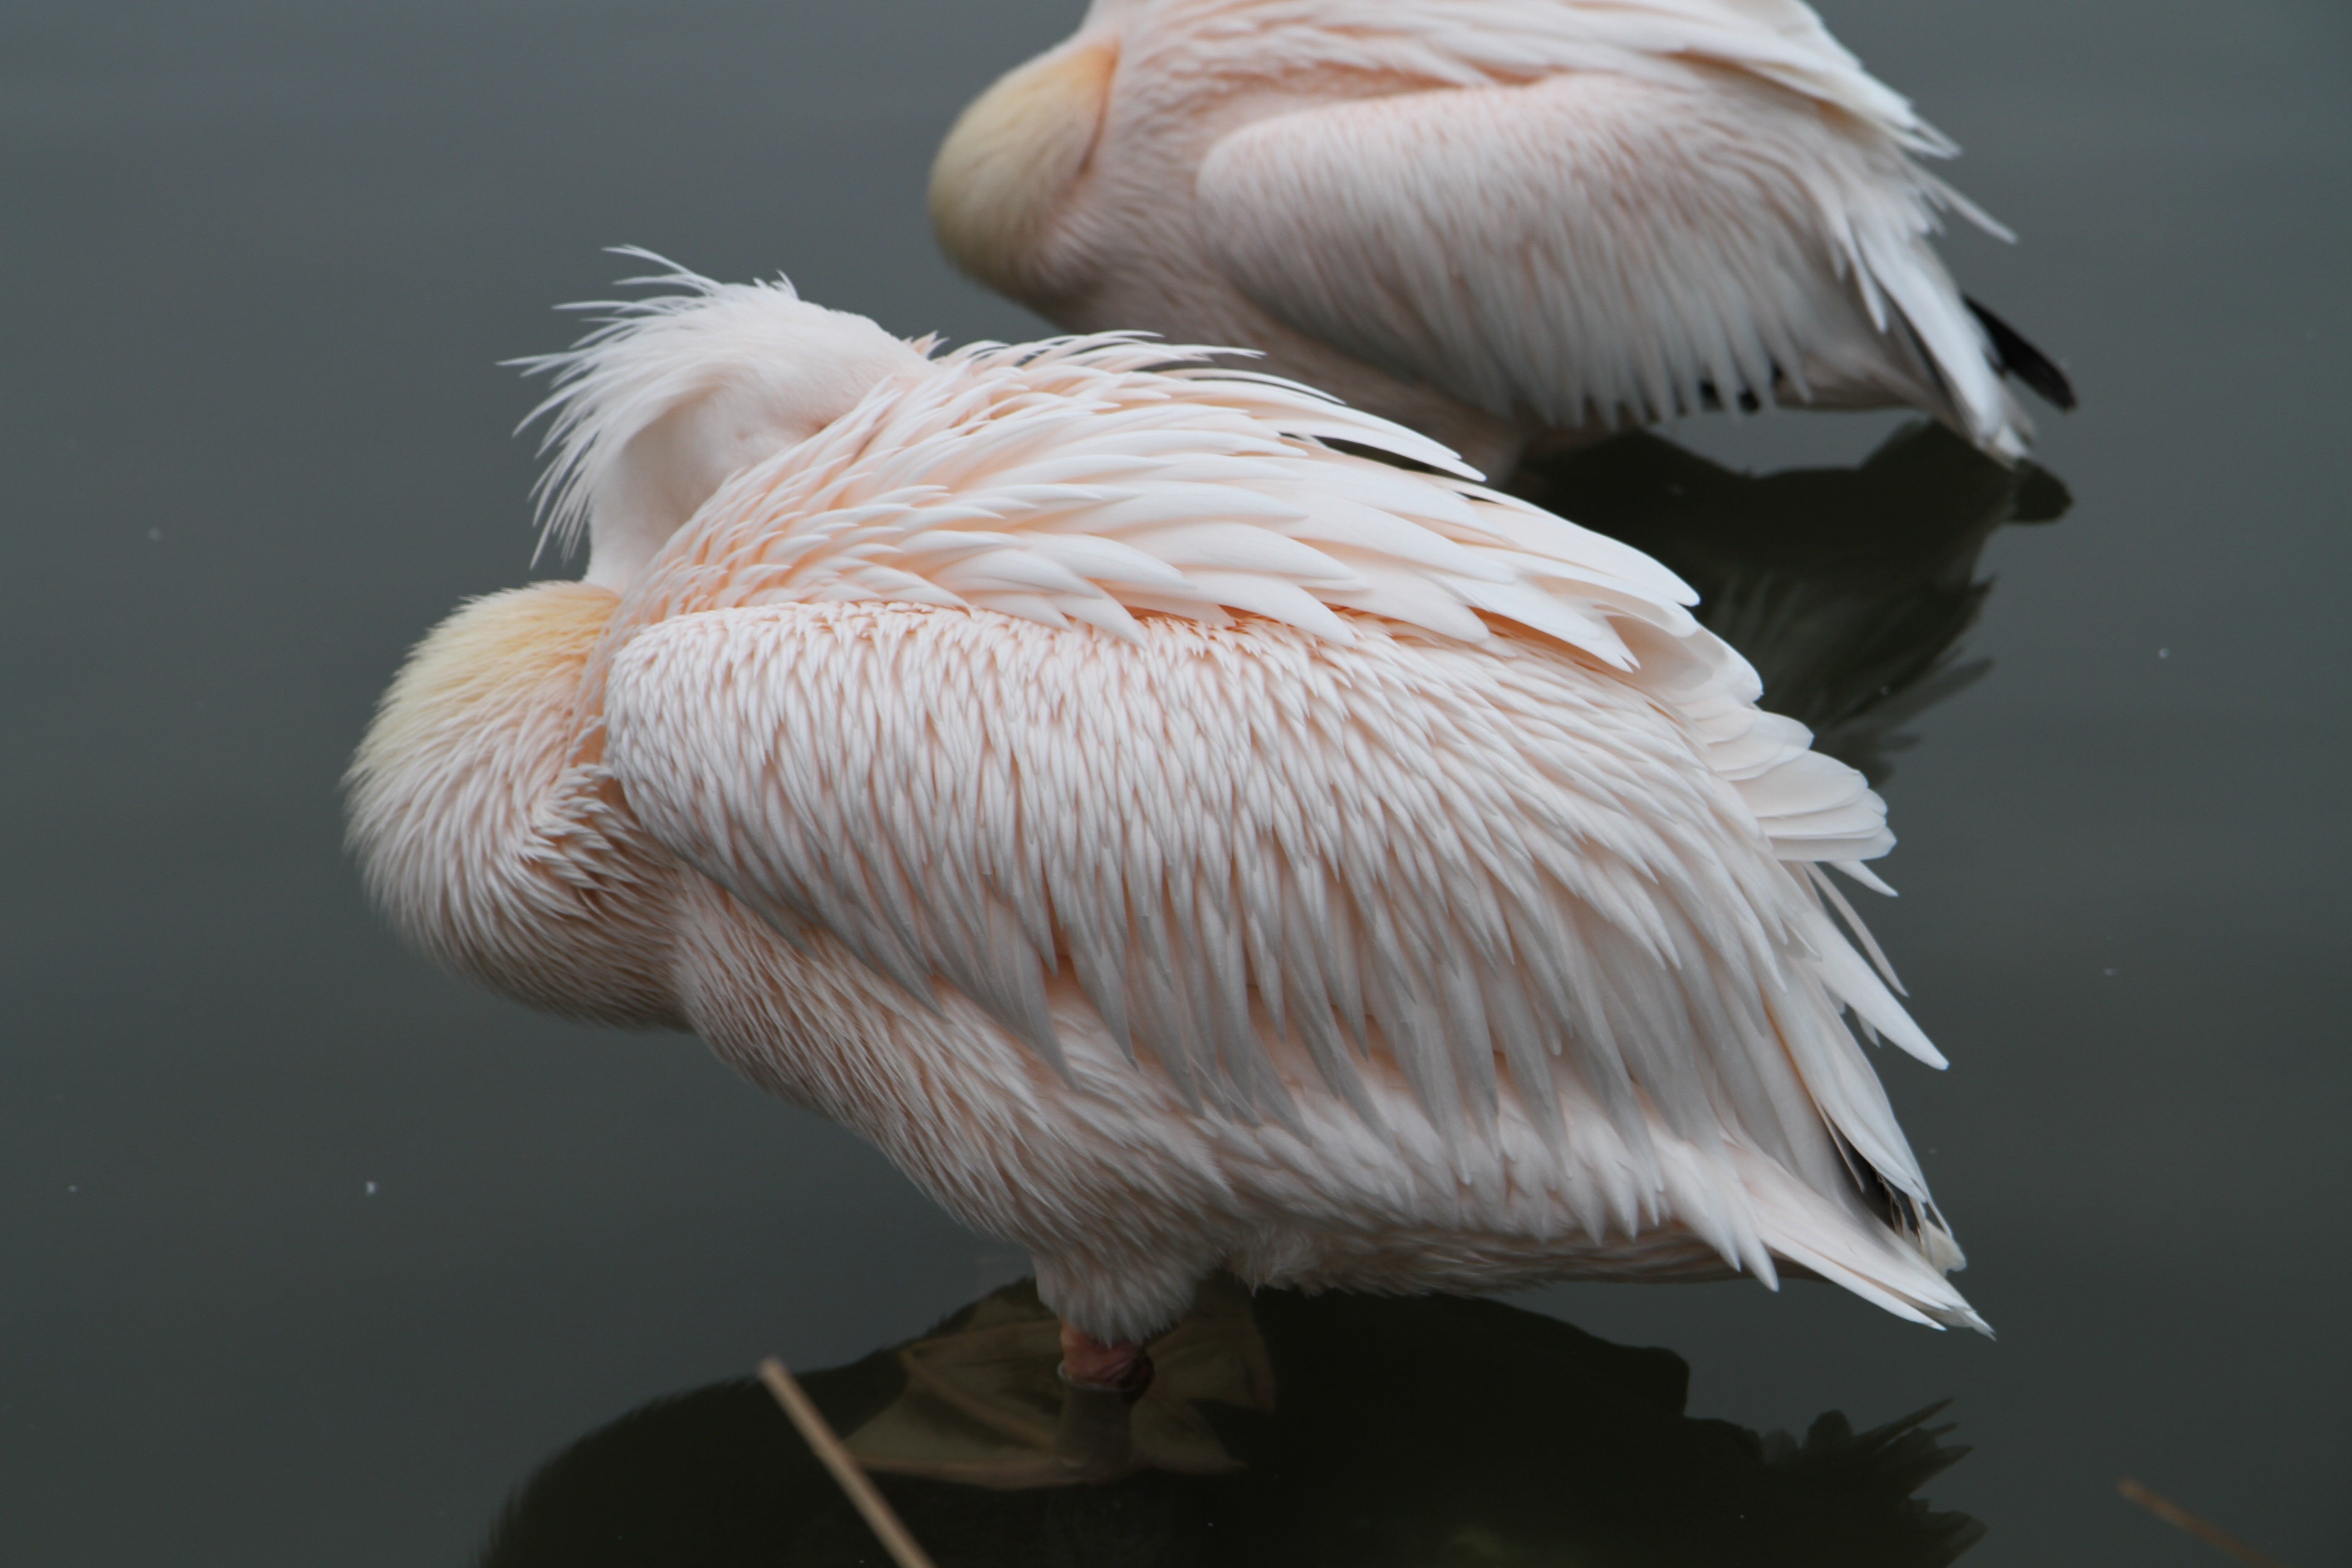 two white birds on body of water at daytime